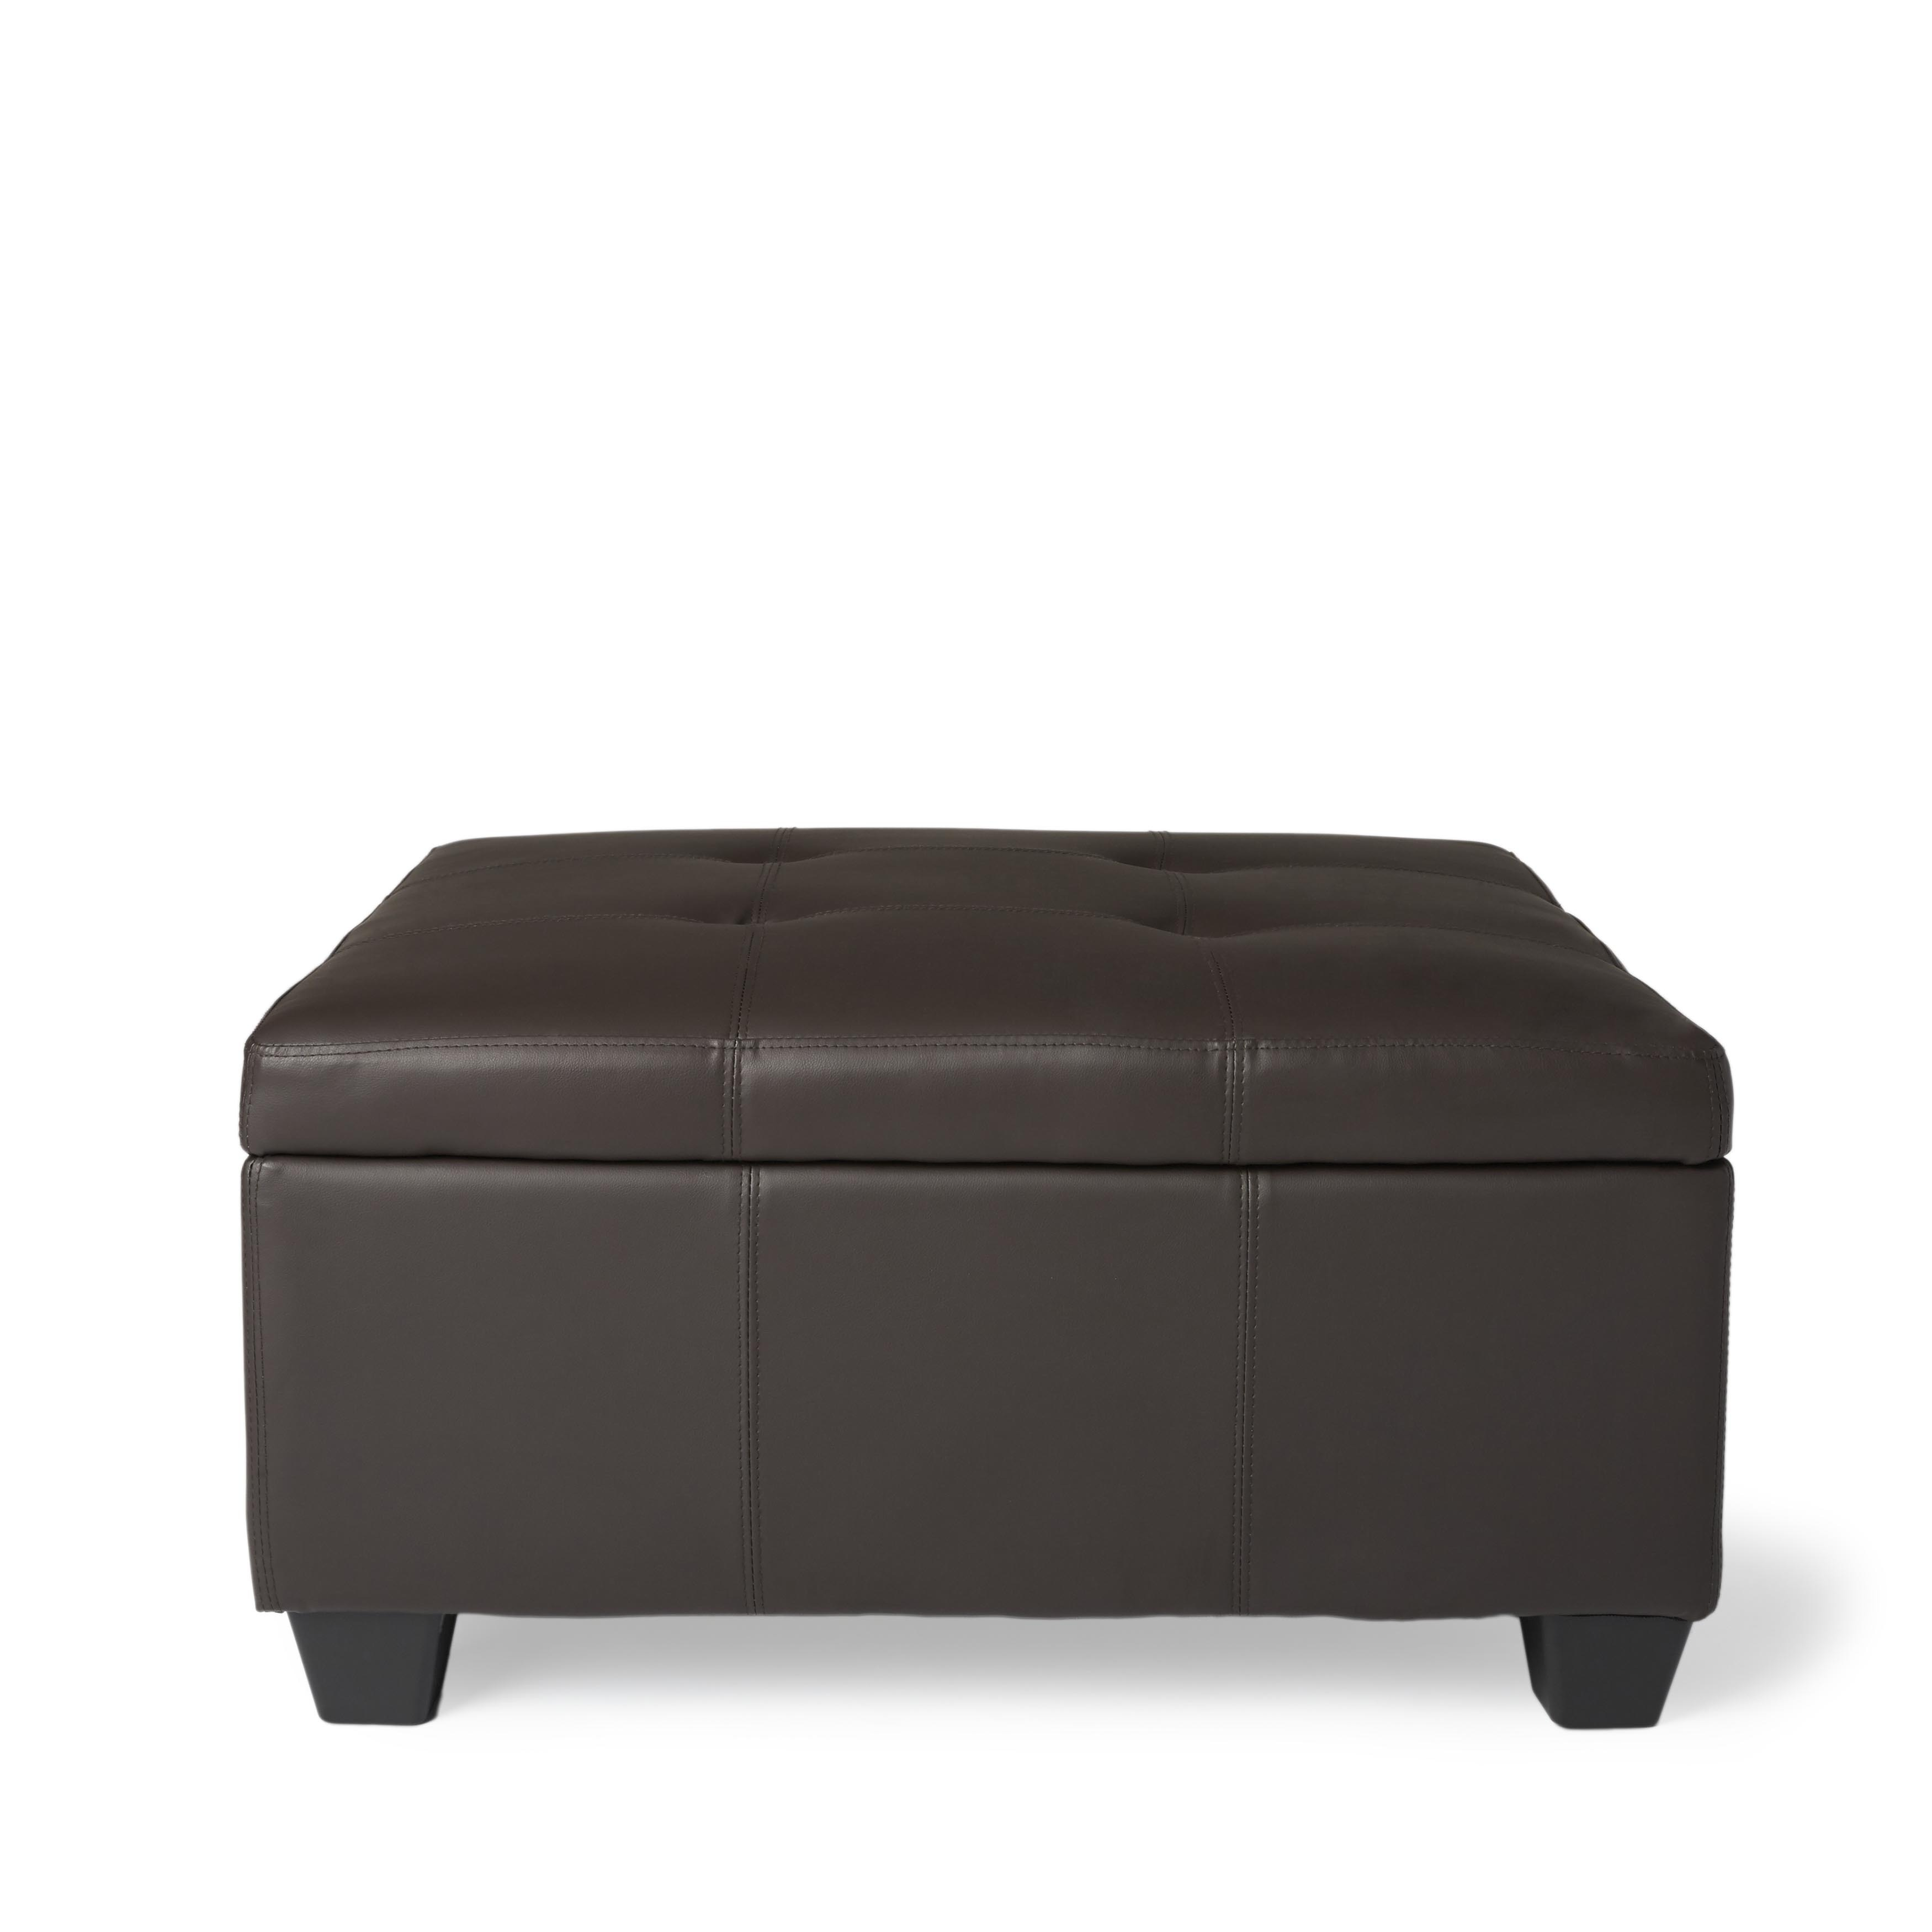 Shop Copper Grove Gowlland 36 Inch Square Hinged Storage Bench